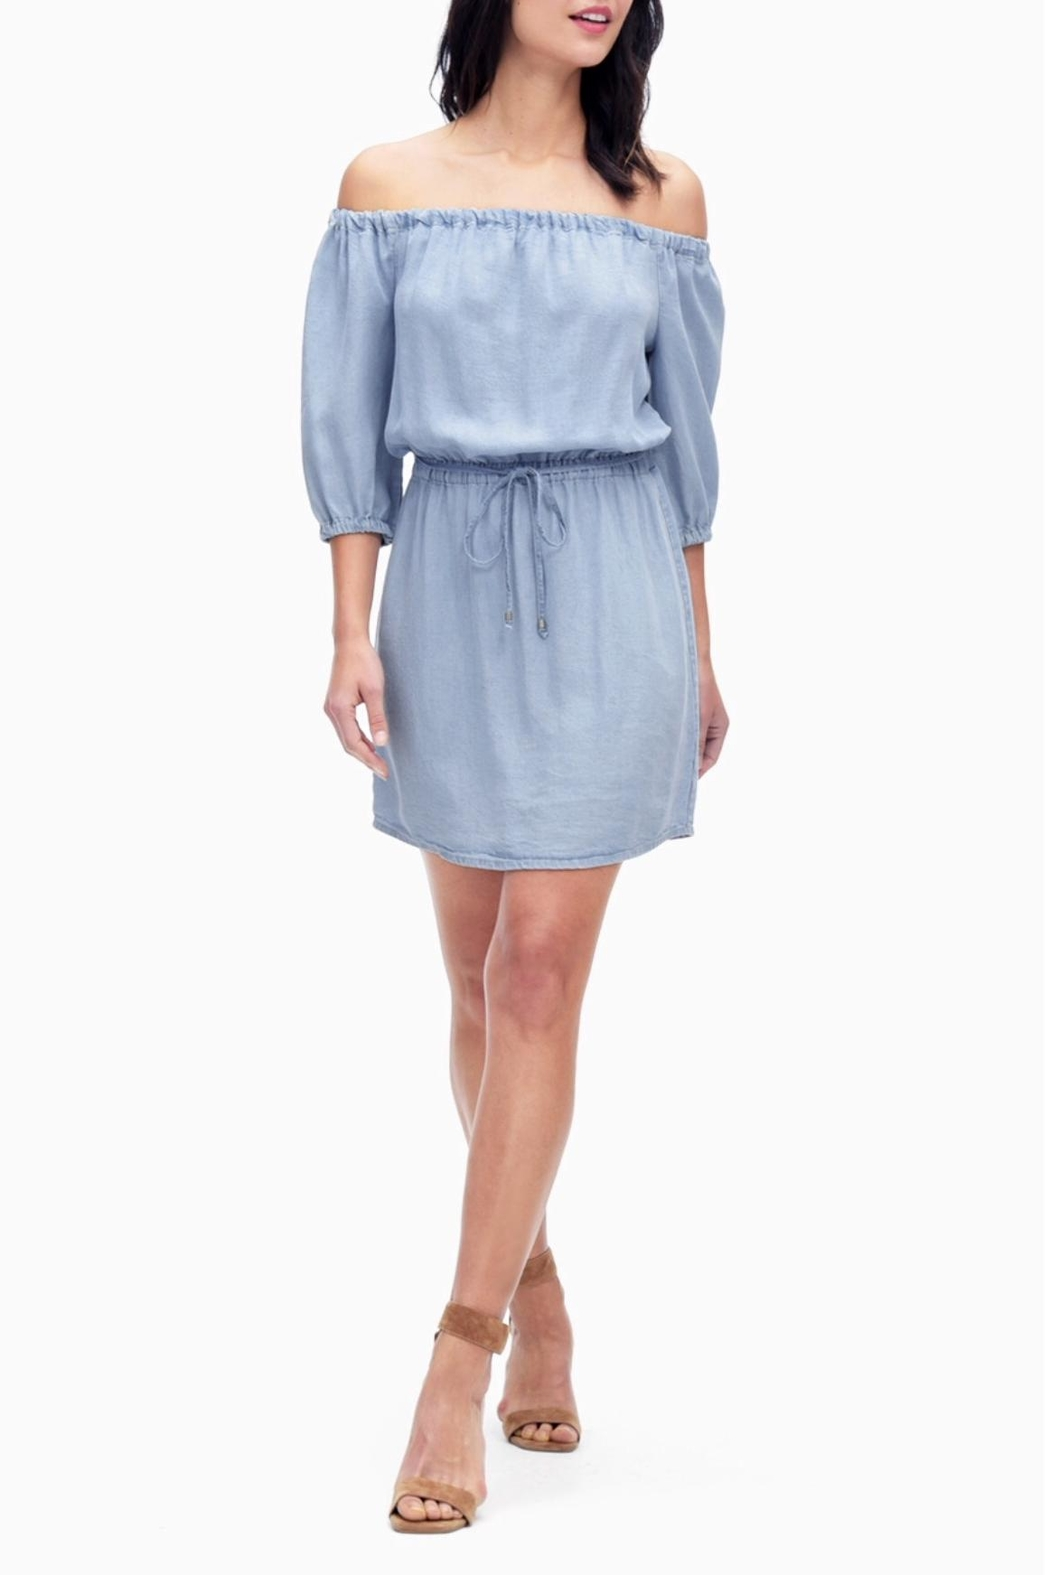 eccc87c3a2d82 Splendid Chambray Off Shoulder Dress from New Jersey by free shop ...